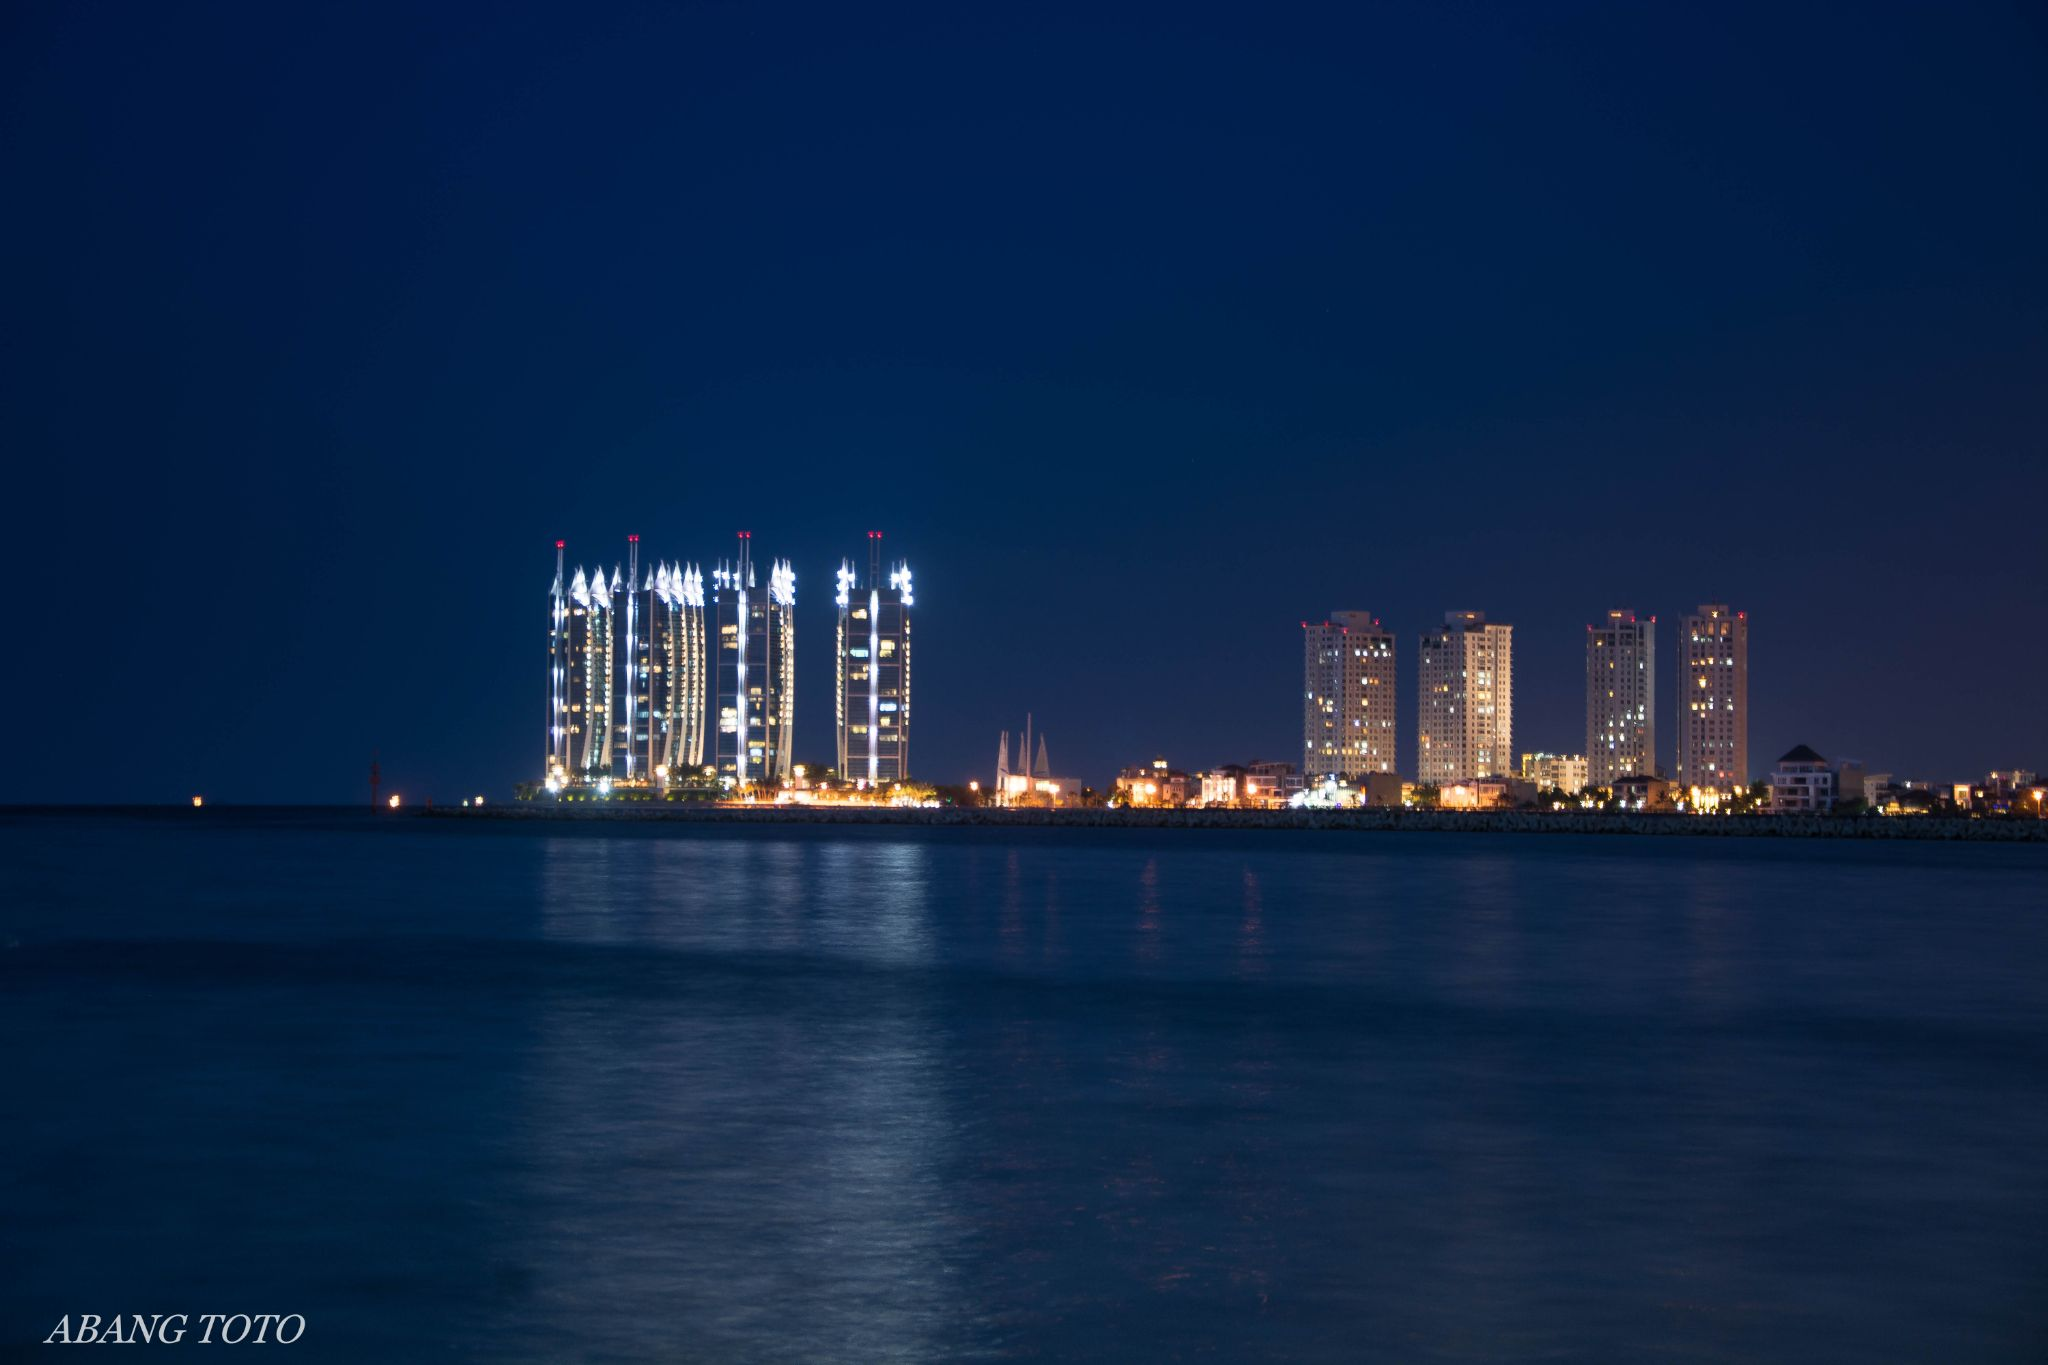 Pluit Bay by Abang Toto